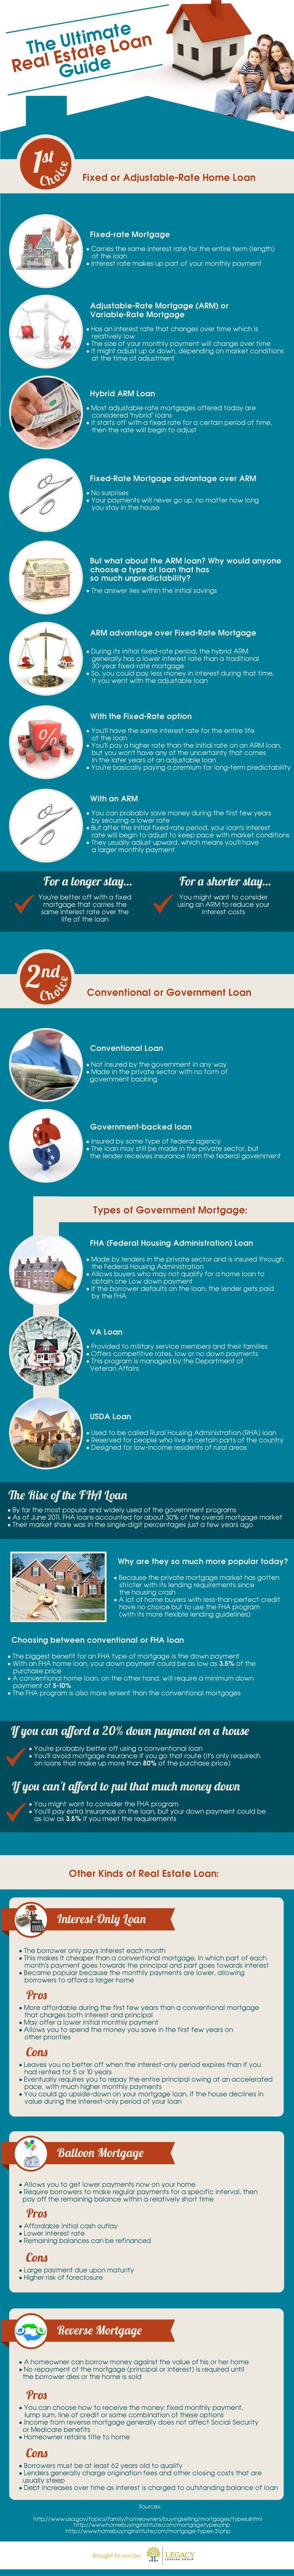 Understanding different types of mortgage loans. Fairly accurate. Definitely don't need 20% dp to do conventional loan though